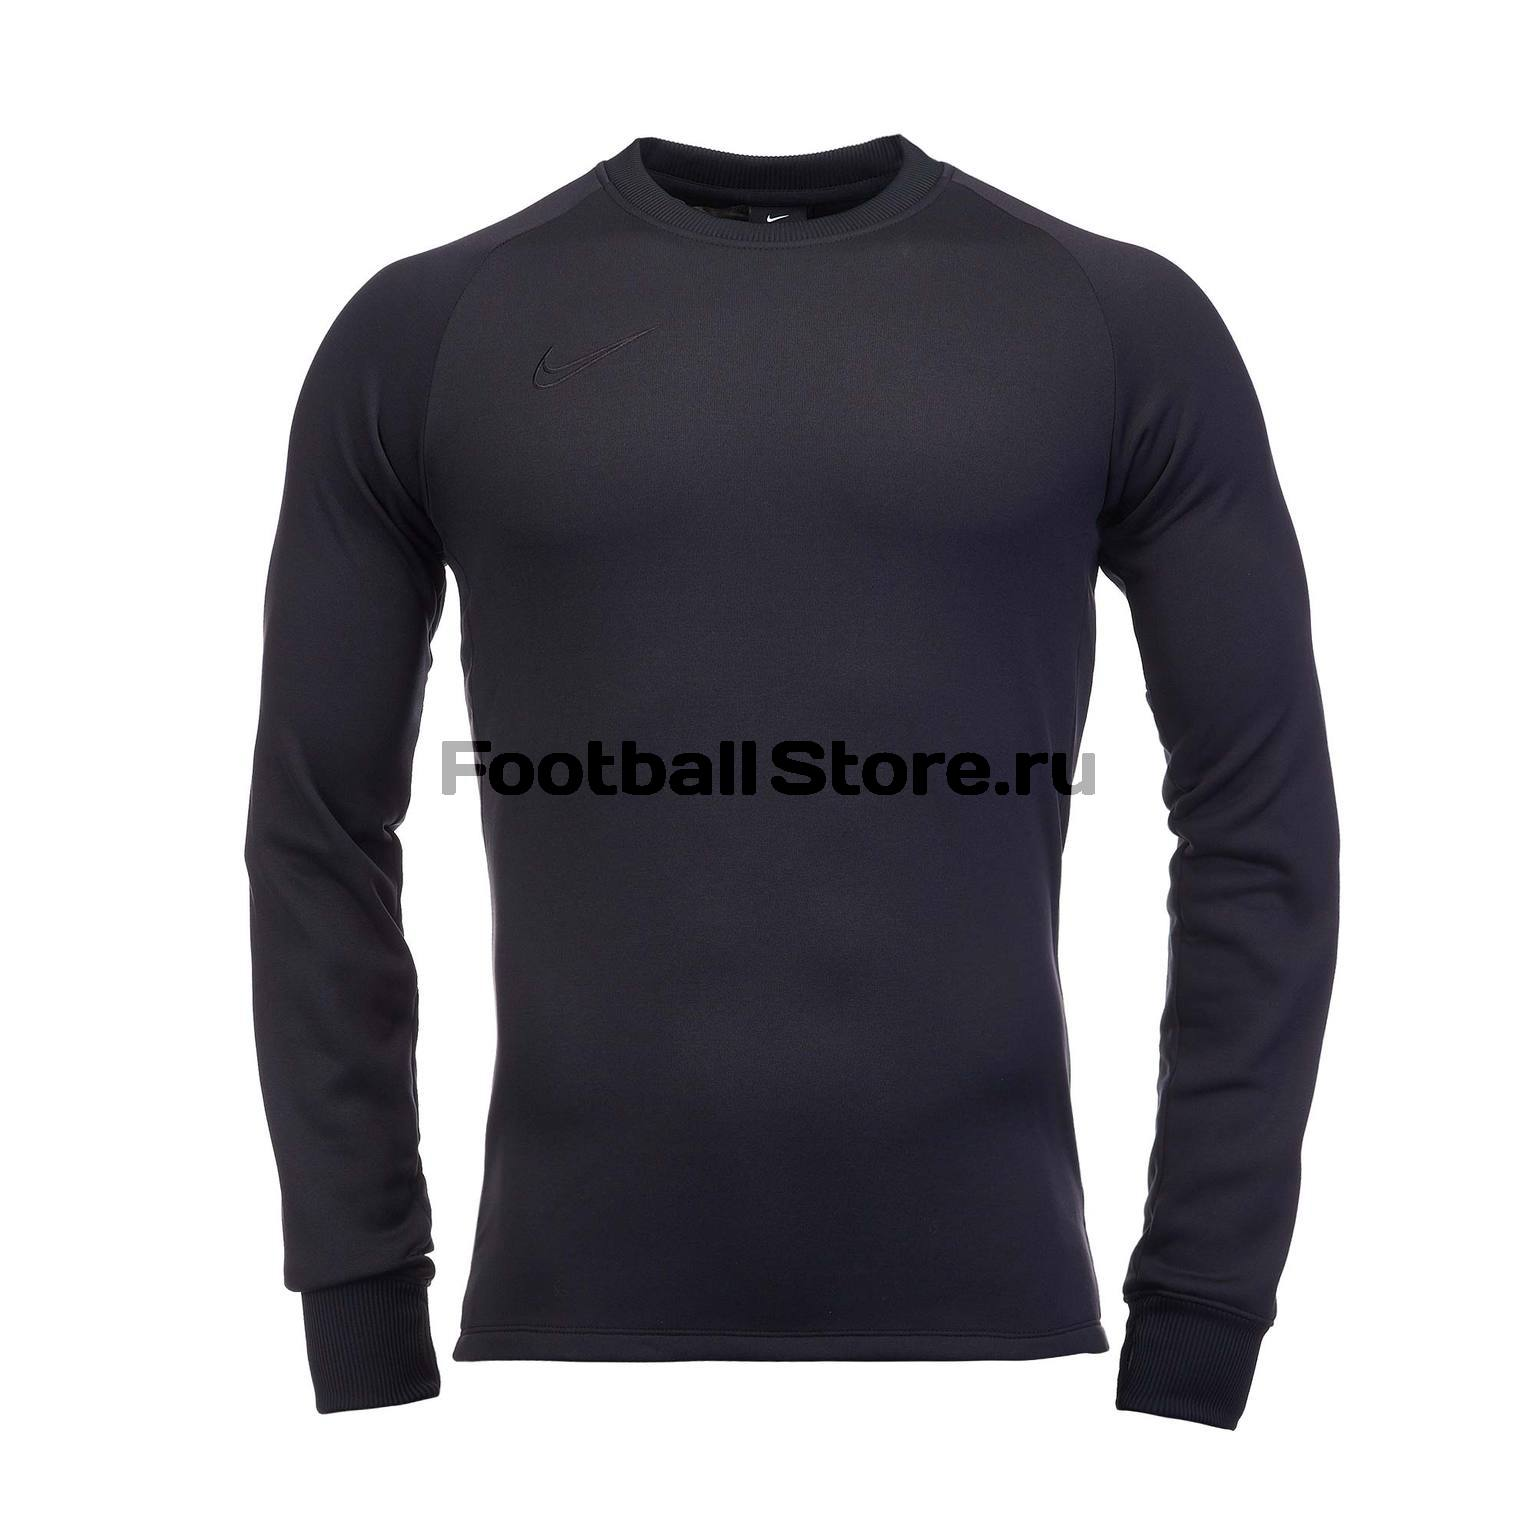 Свитер Nike Therma Academy Crew Top AO9189-010 футболка nike dry academy top gx at5714 010